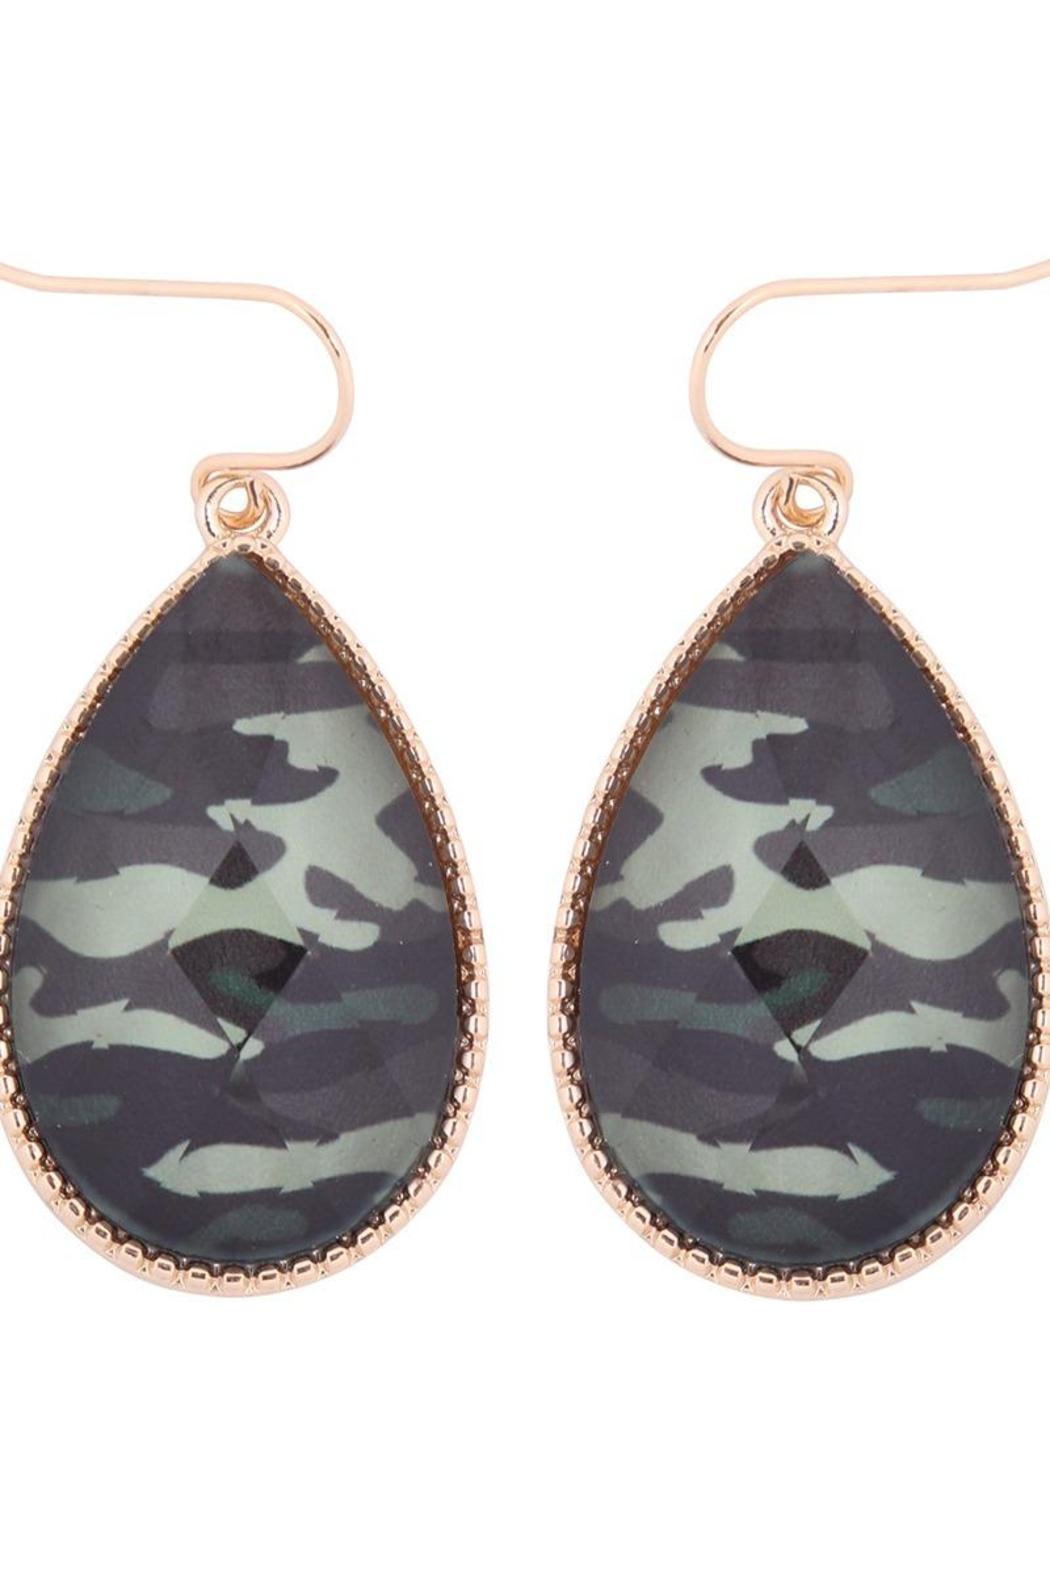 Riah Fashion Faceted -Glittery -Teardrop-Earrings - Front Full Image